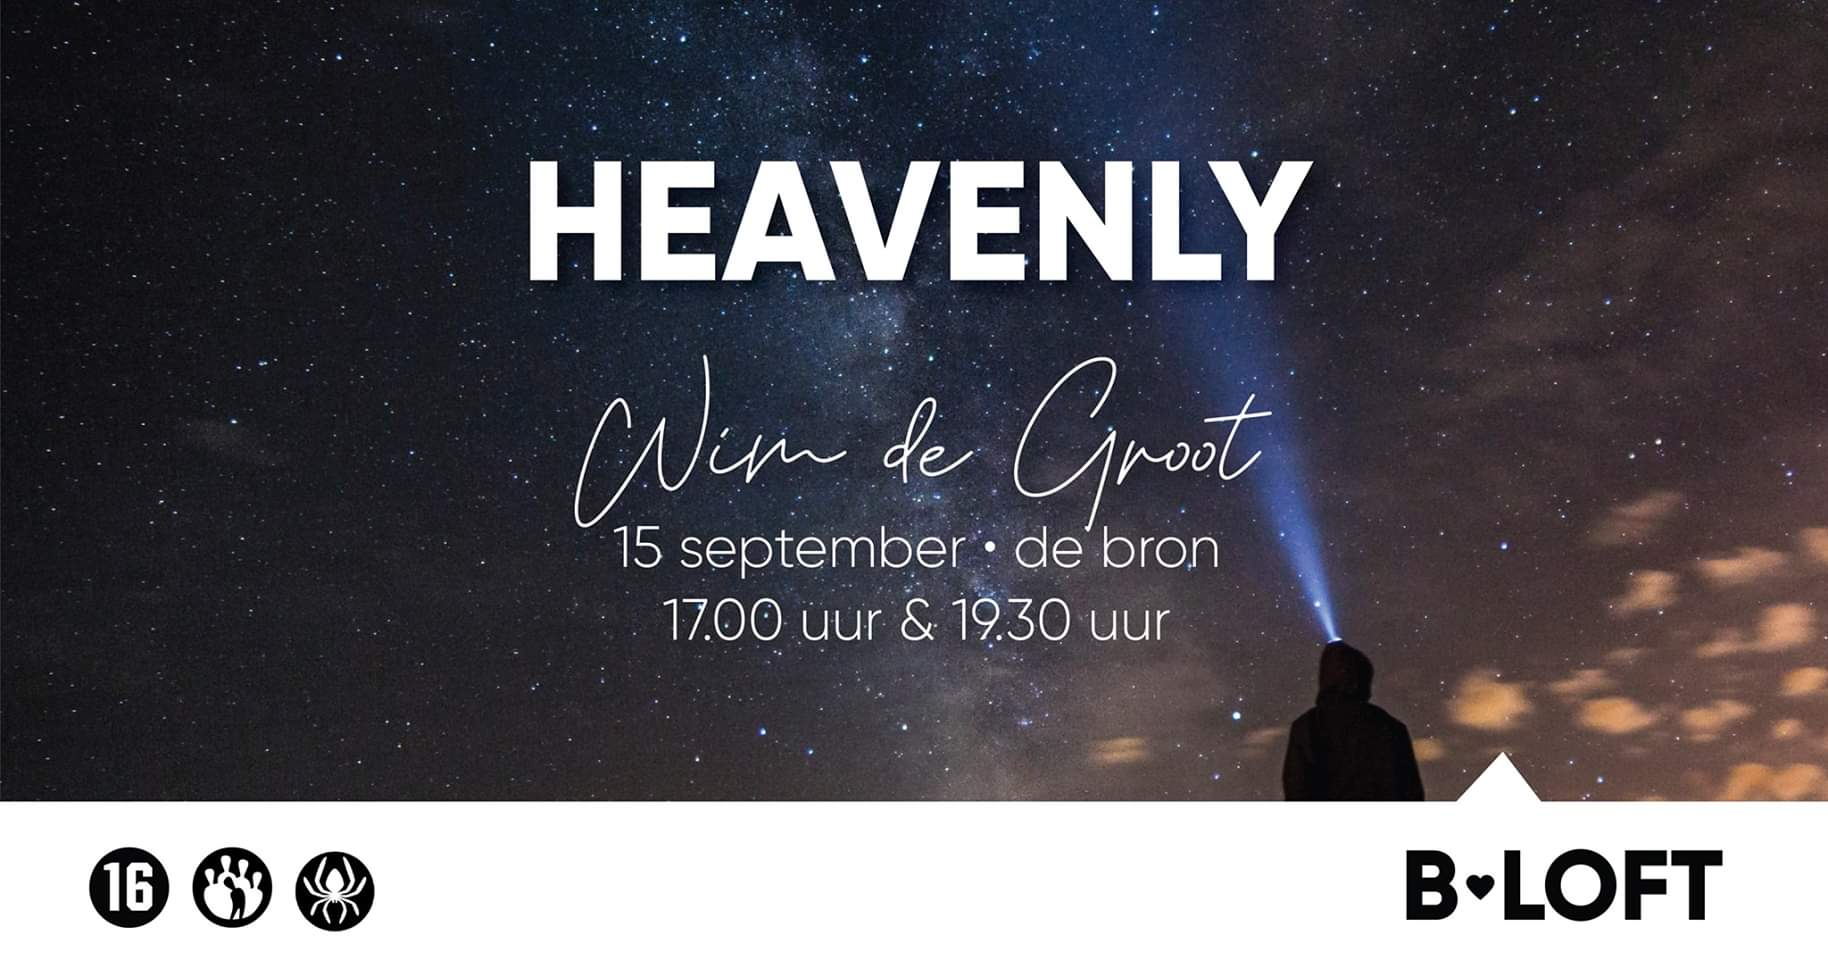 B.LOFT 15-09-2019 Heavenly